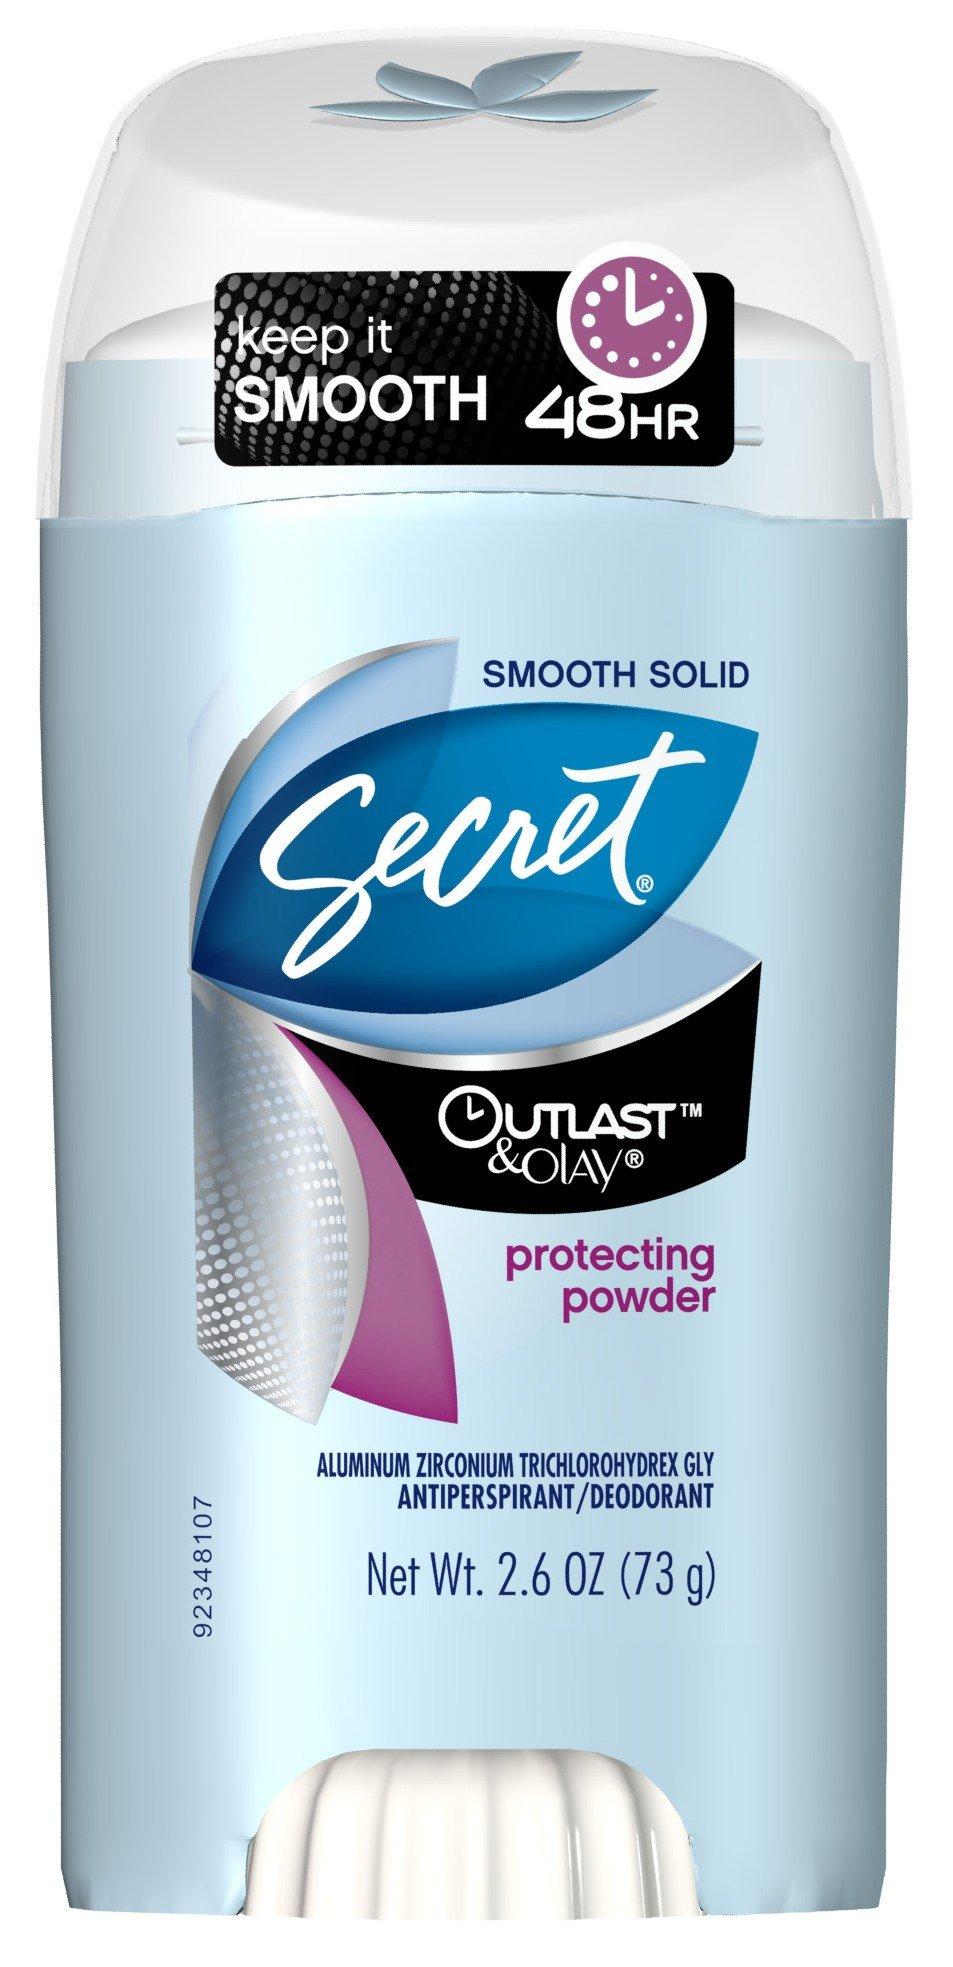 Secret Deodorant Outlast With Olay Smooth Solid Protect2.6 Ounce (76ml) (6 Pack)